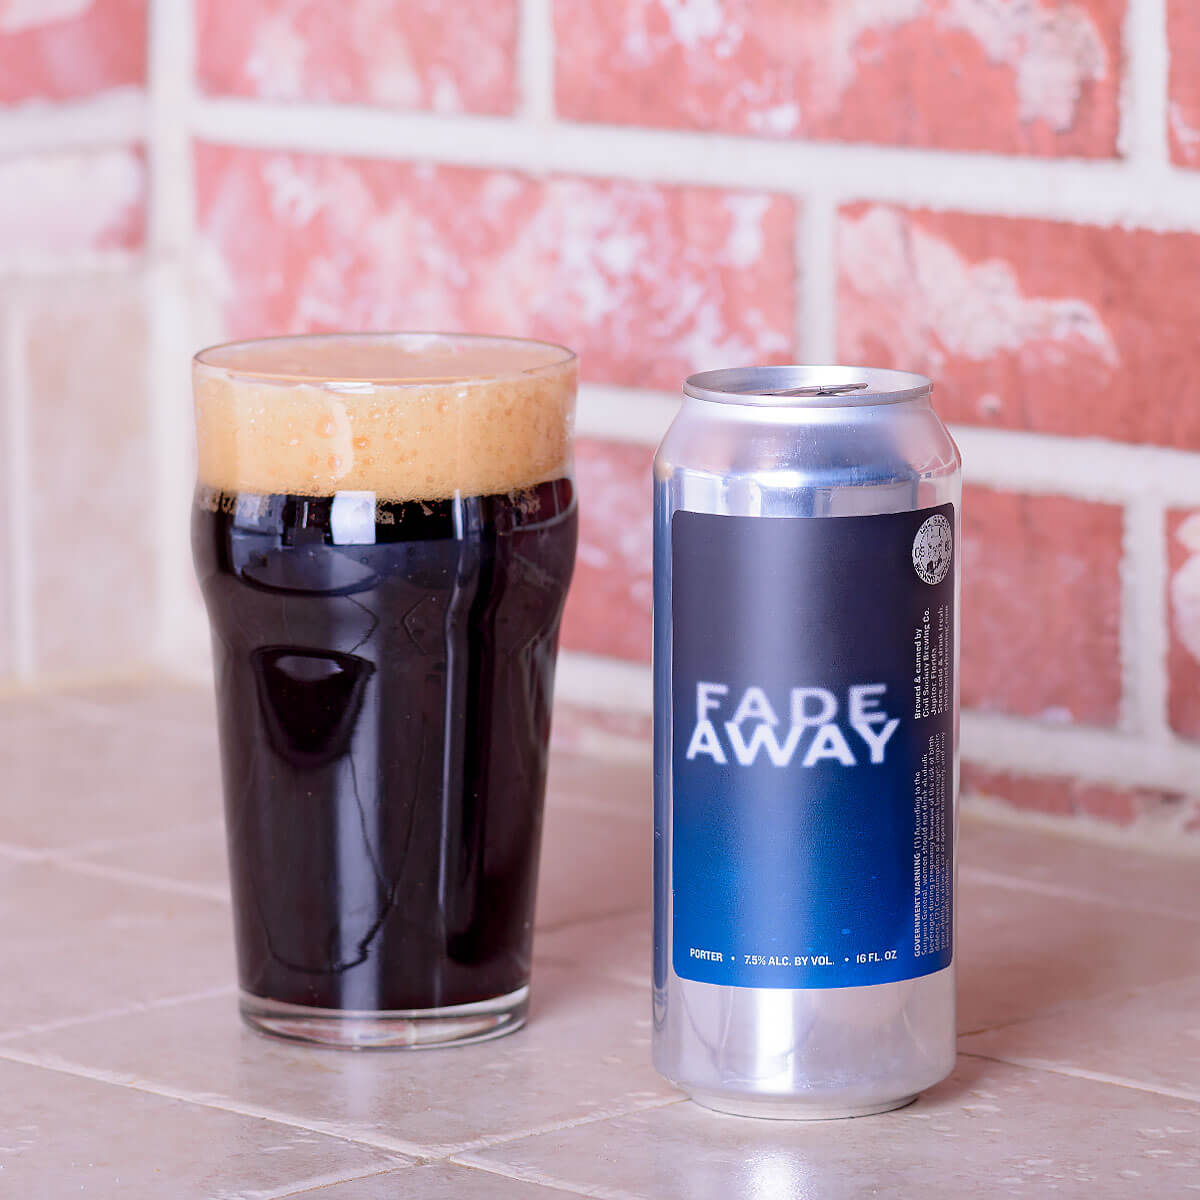 Fade Away, an American Porter by Civil Society Brewing Co.